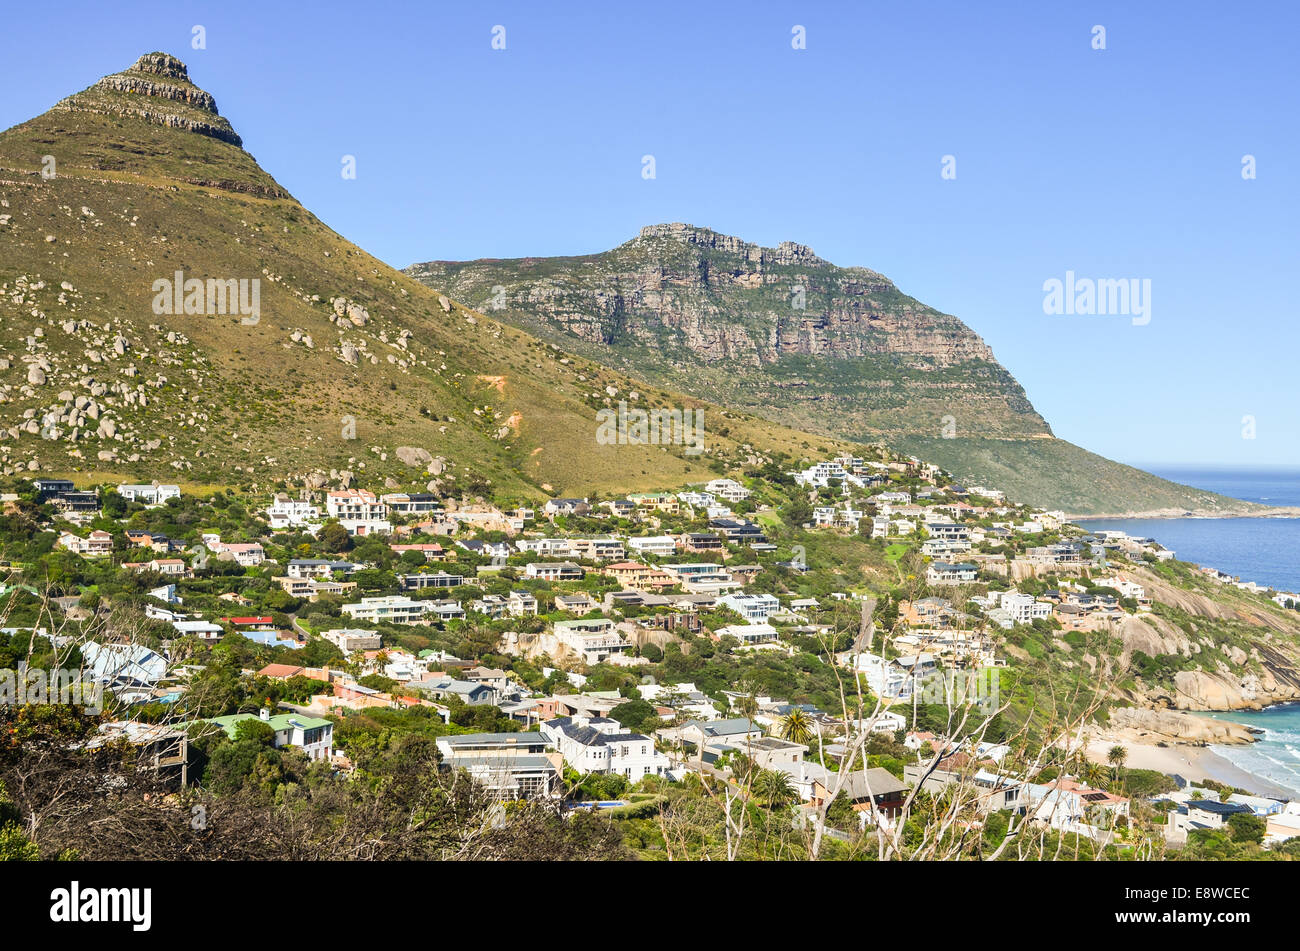 Llandudno, a surfing hot spot, and the dramatic landscape of Chapman's peak drive, Cape Town peninsula, South - Stock Image